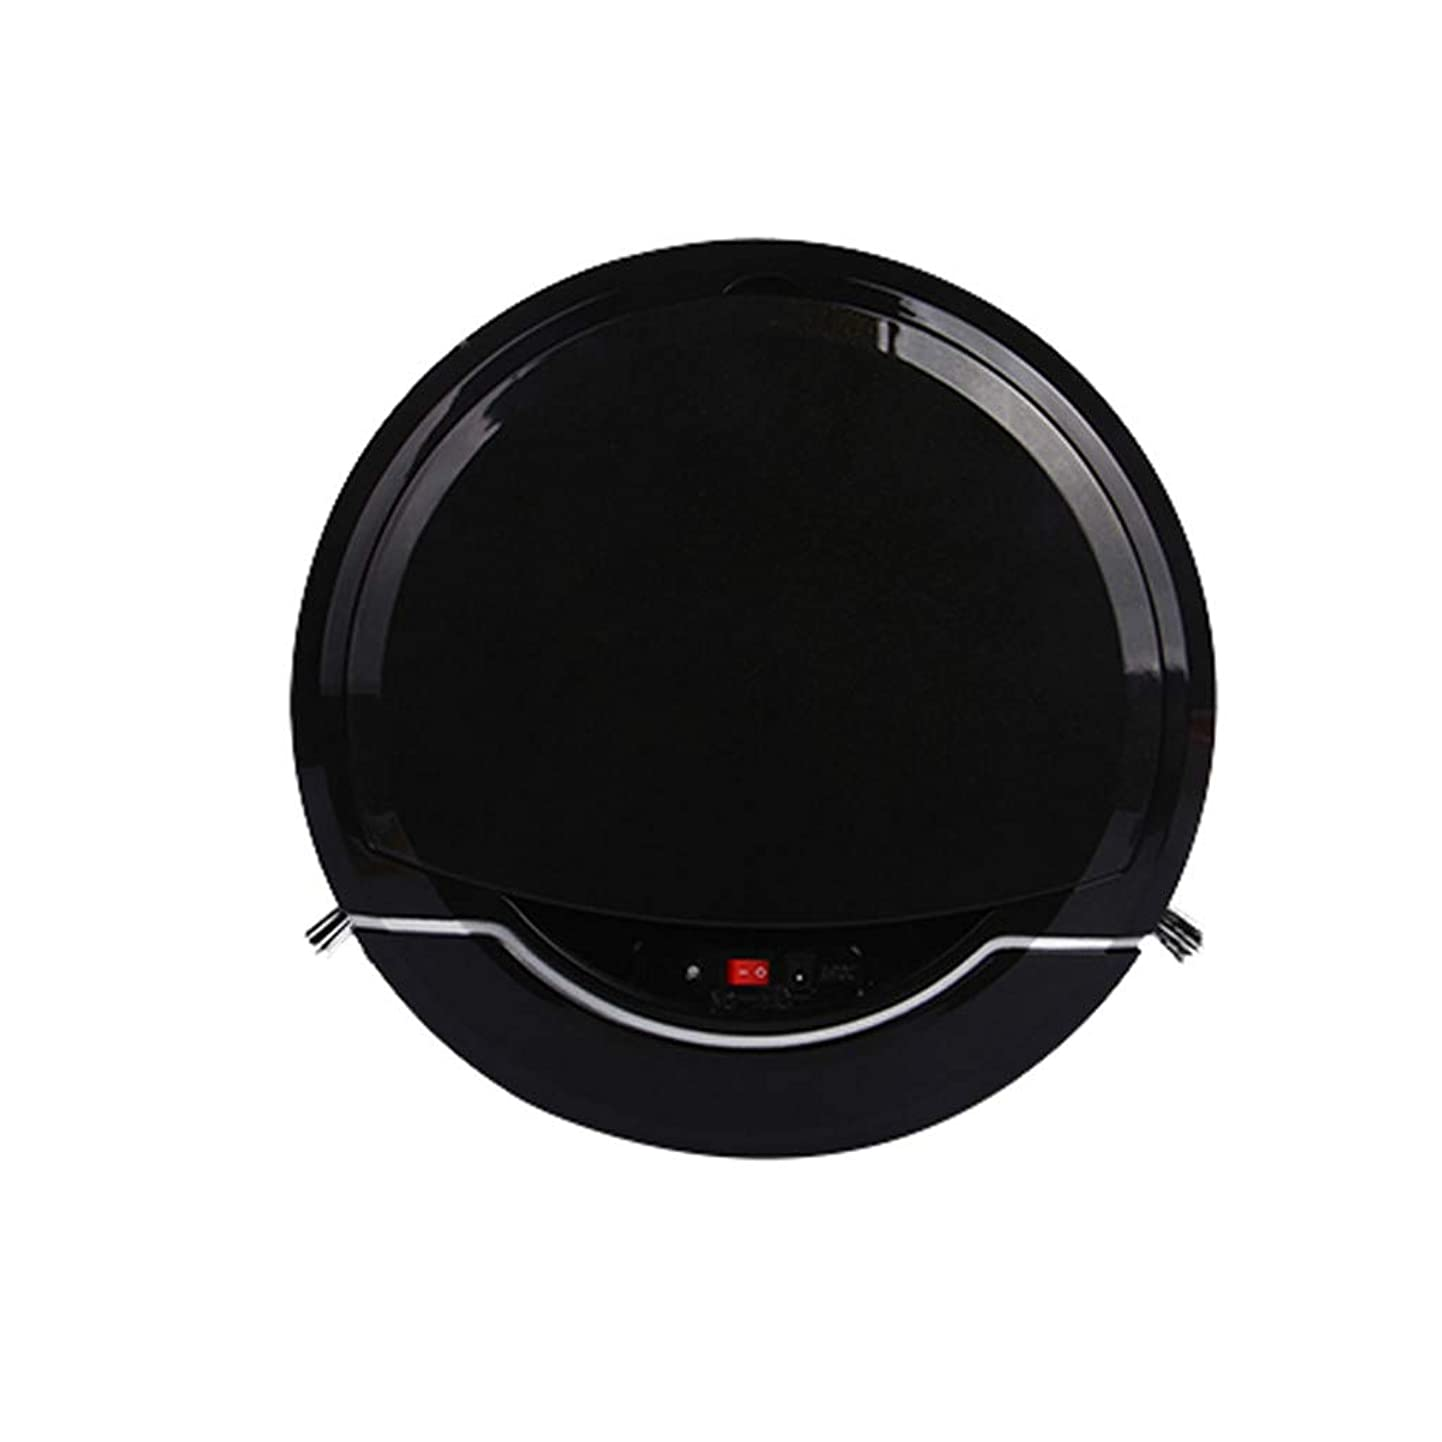 ?? Orcbee ?? _Rechargeable Smart Robot Vacuum Cleaner Dry Wet Sweeping Auto Dust Sweeper Machine cuwkjhgdcgh7